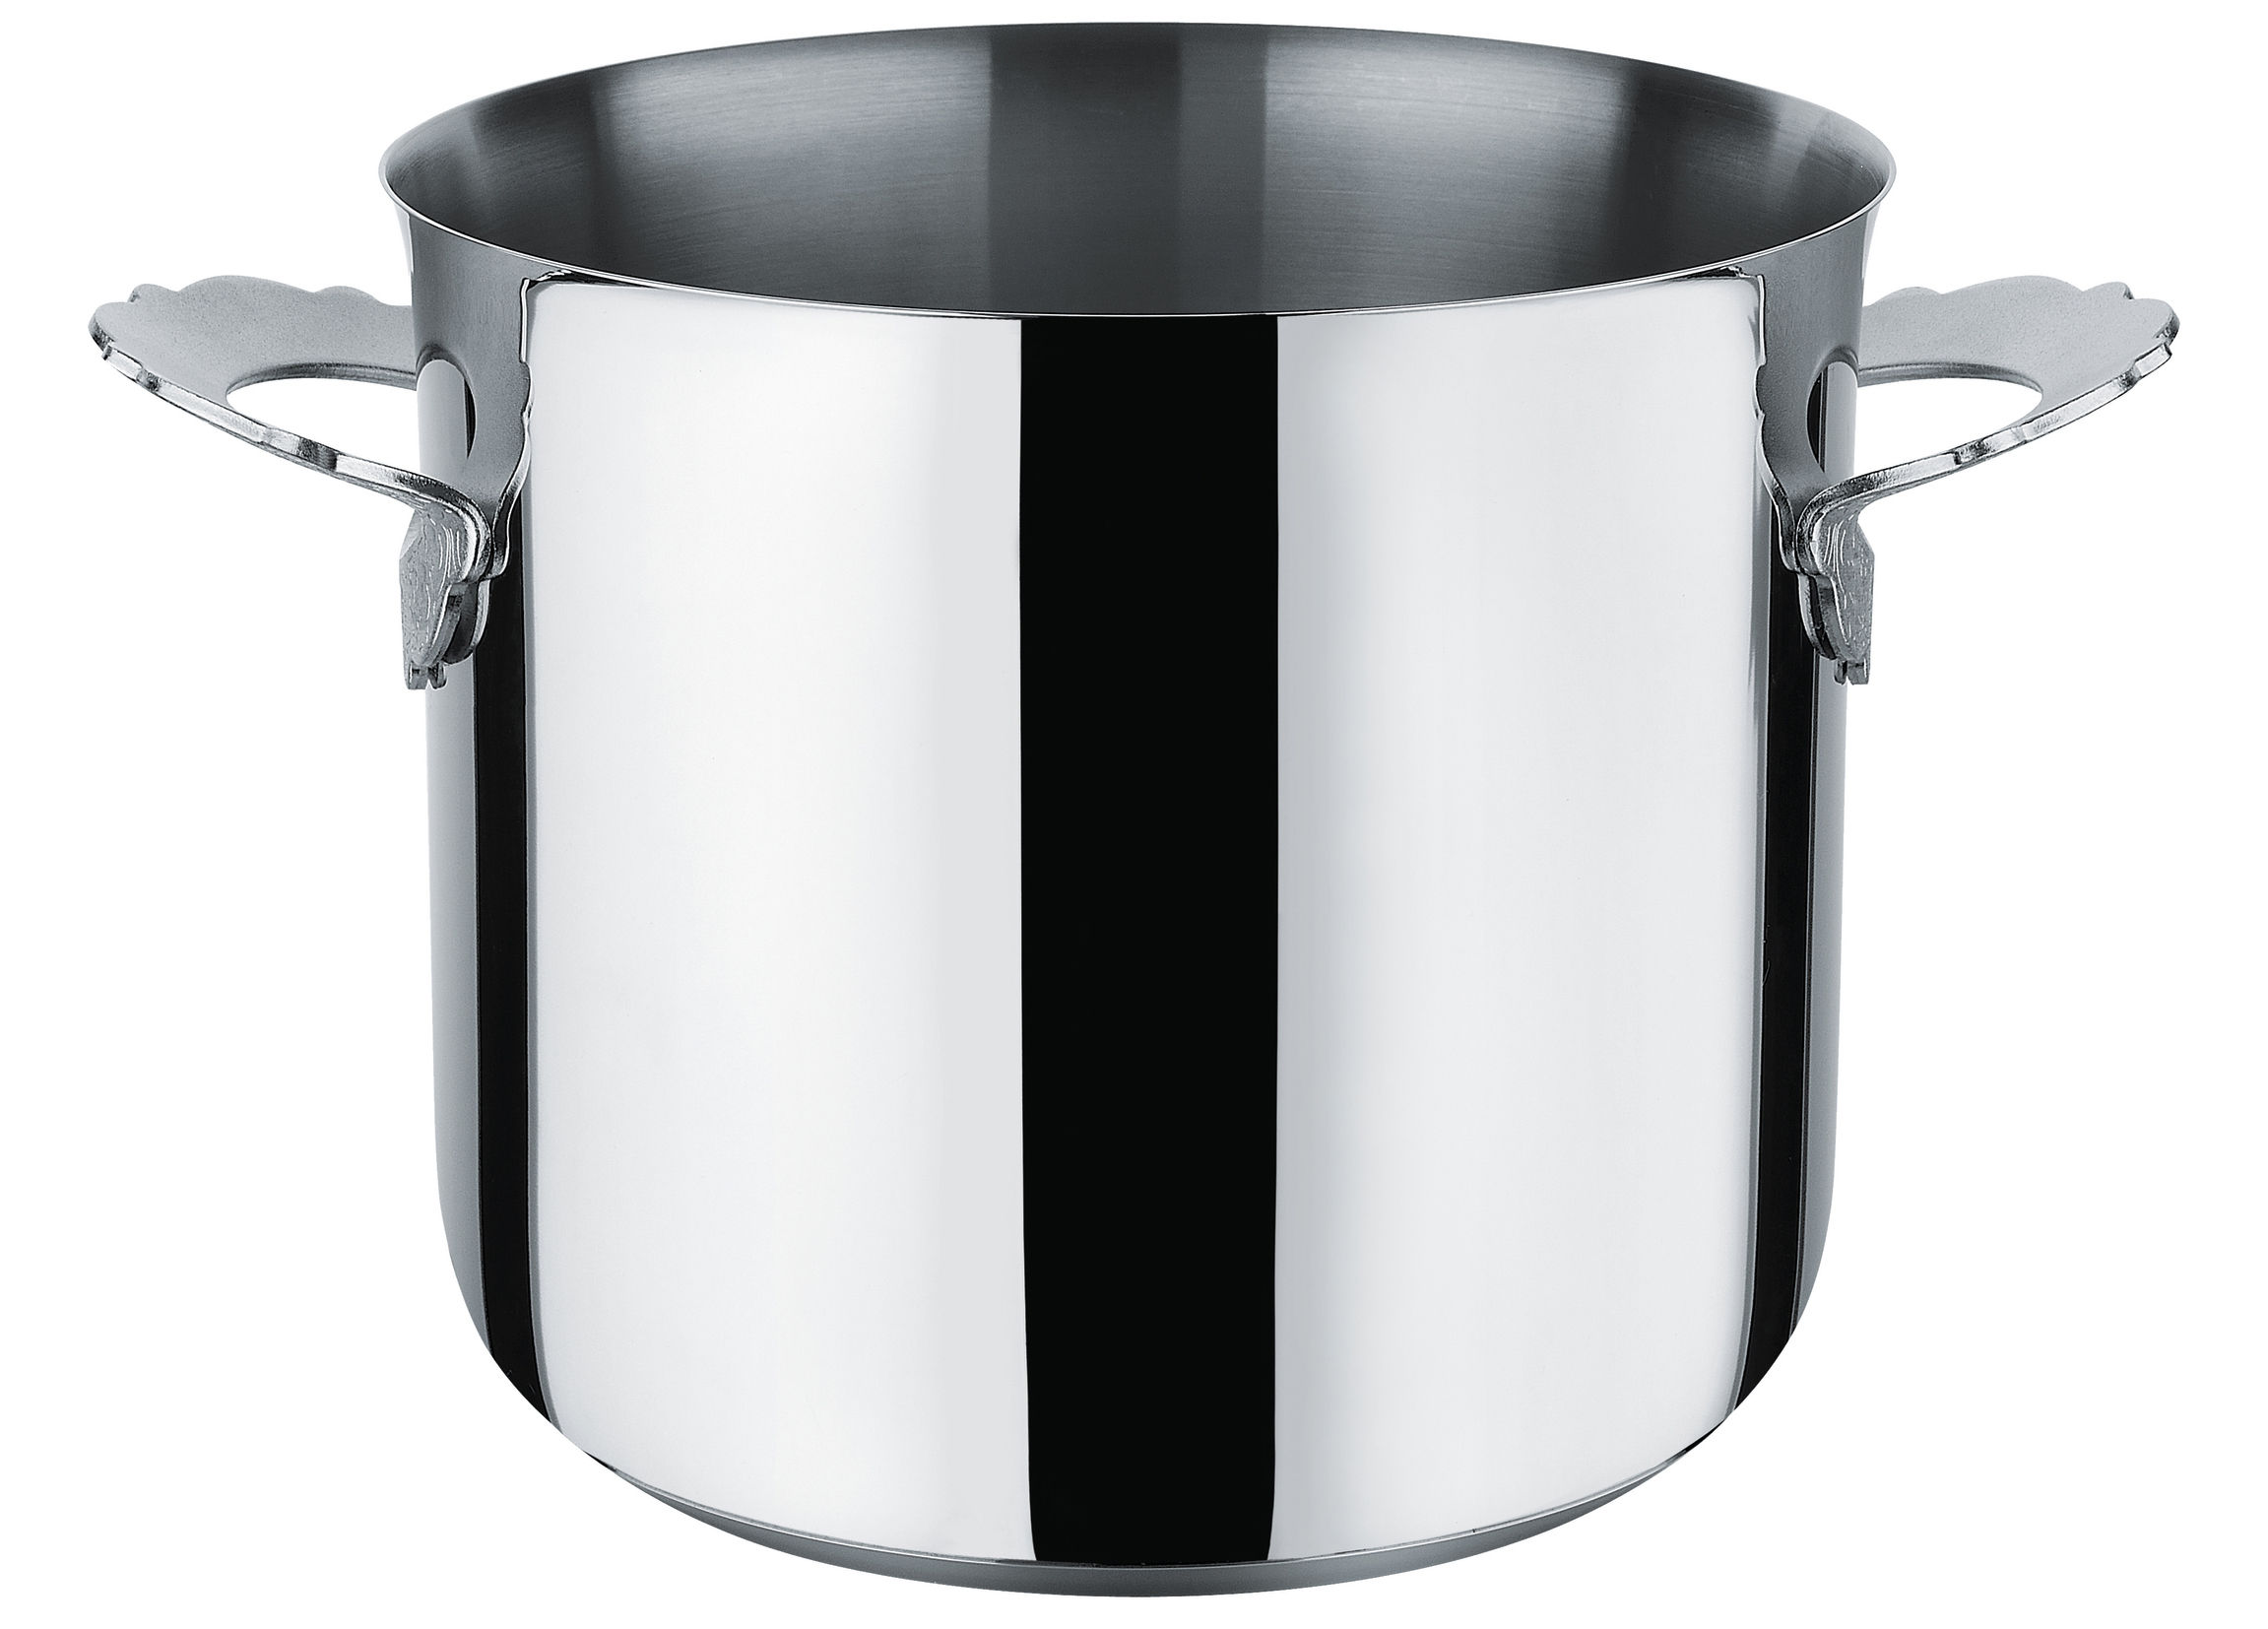 Kitchenware - Pots & Pans - Dressed Pot - Ø 20 cm by Alessi - Mirror polished steel - Stainless steel 18/10